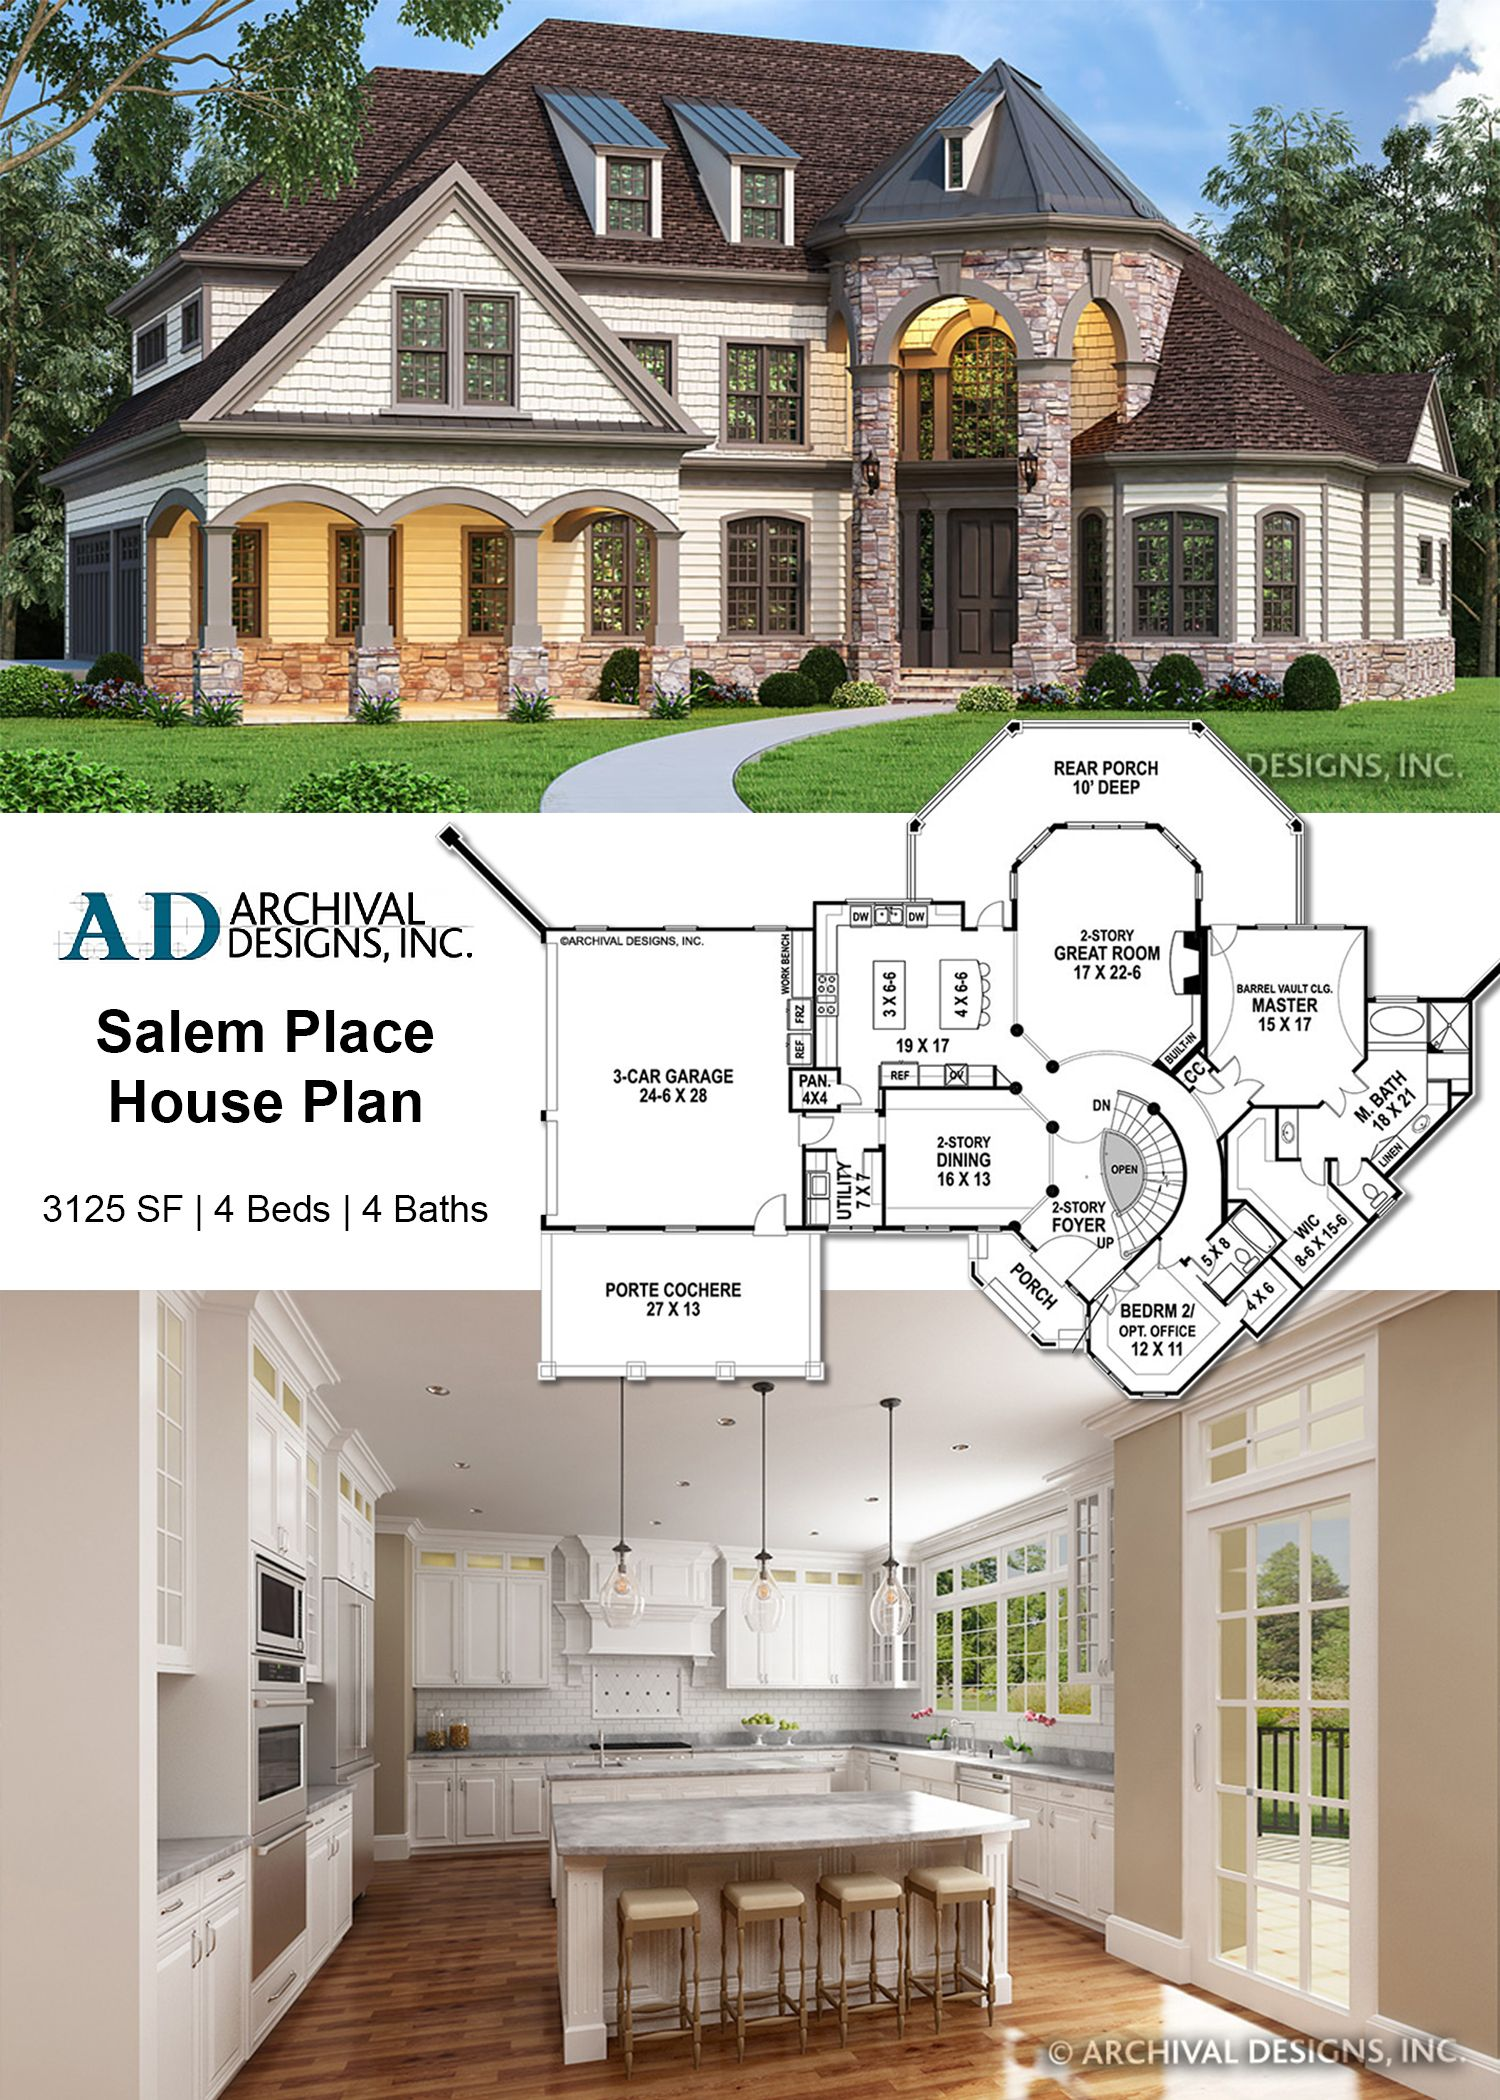 Salem Place House Plan European House House Plans European House Plans